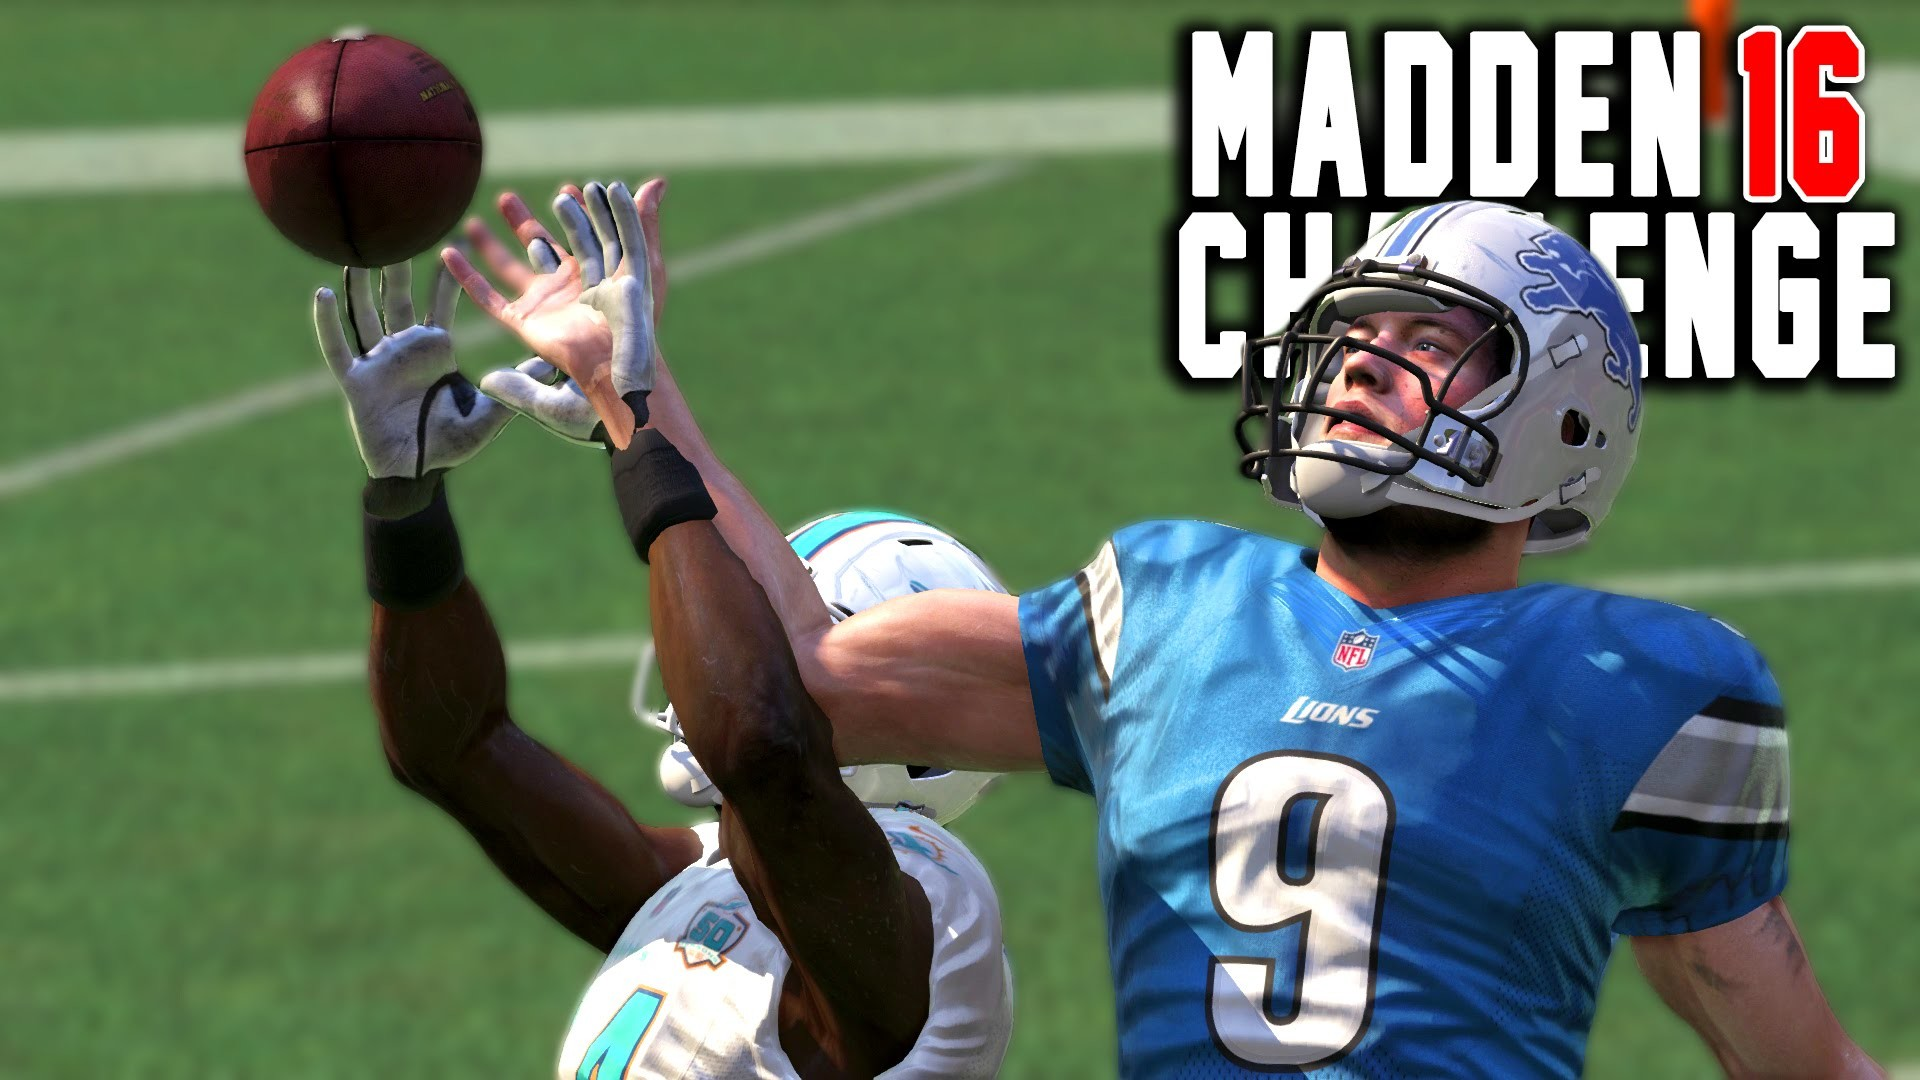 1920x1080 Can Matthew Stafford Catch A One Handed Interception? - Madden 16 NFL  Challenge - YouTube